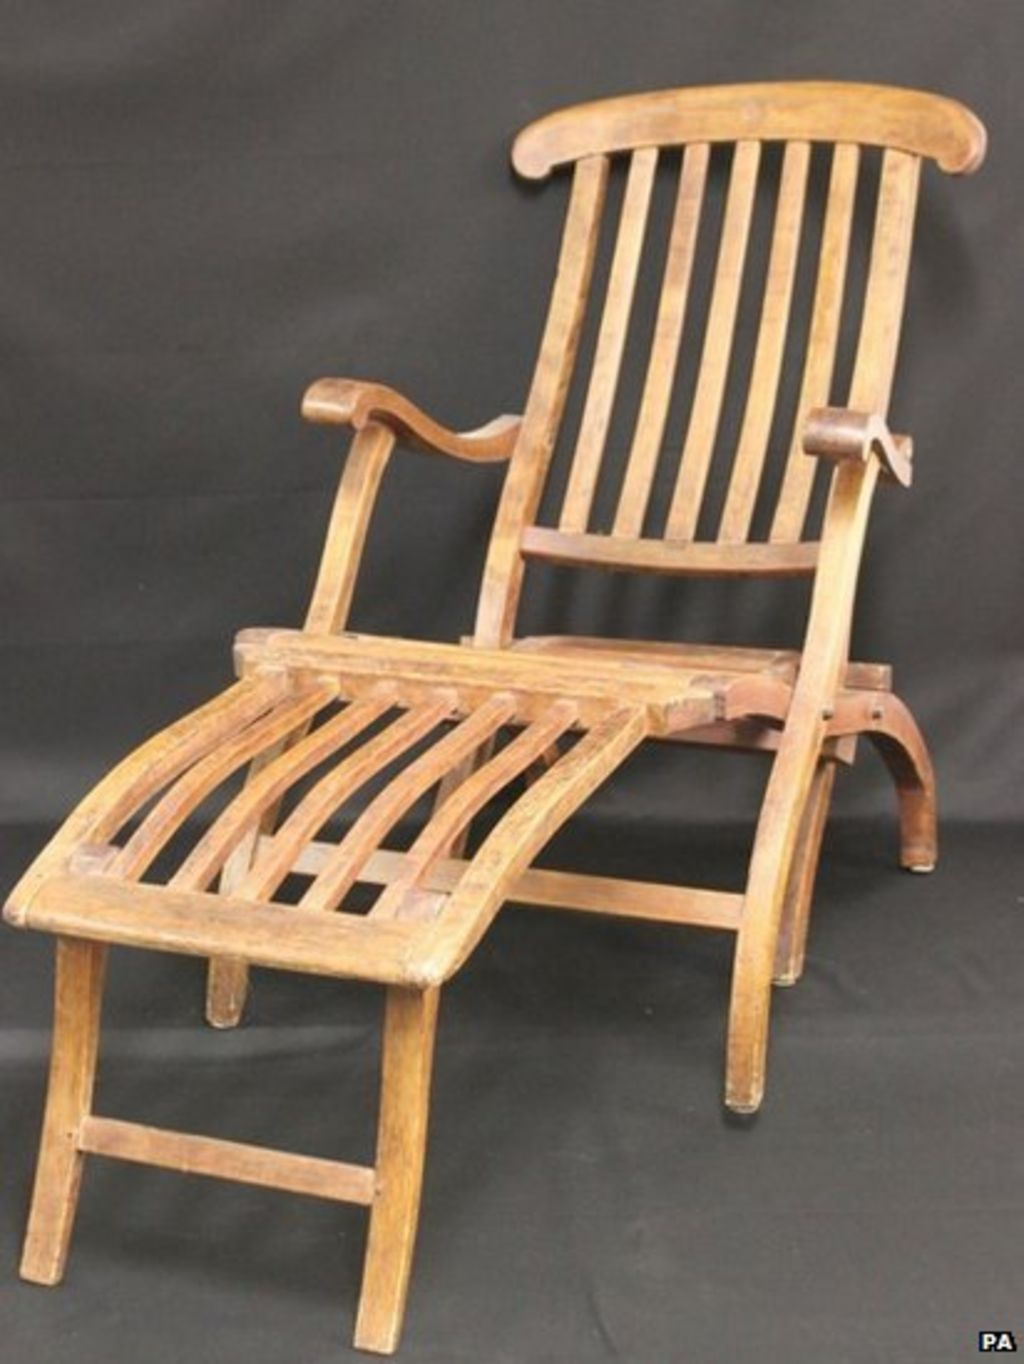 Titanic Deck Chair Titanic Deckchair 39may Sell For 80k 39 At Auction Bbc News